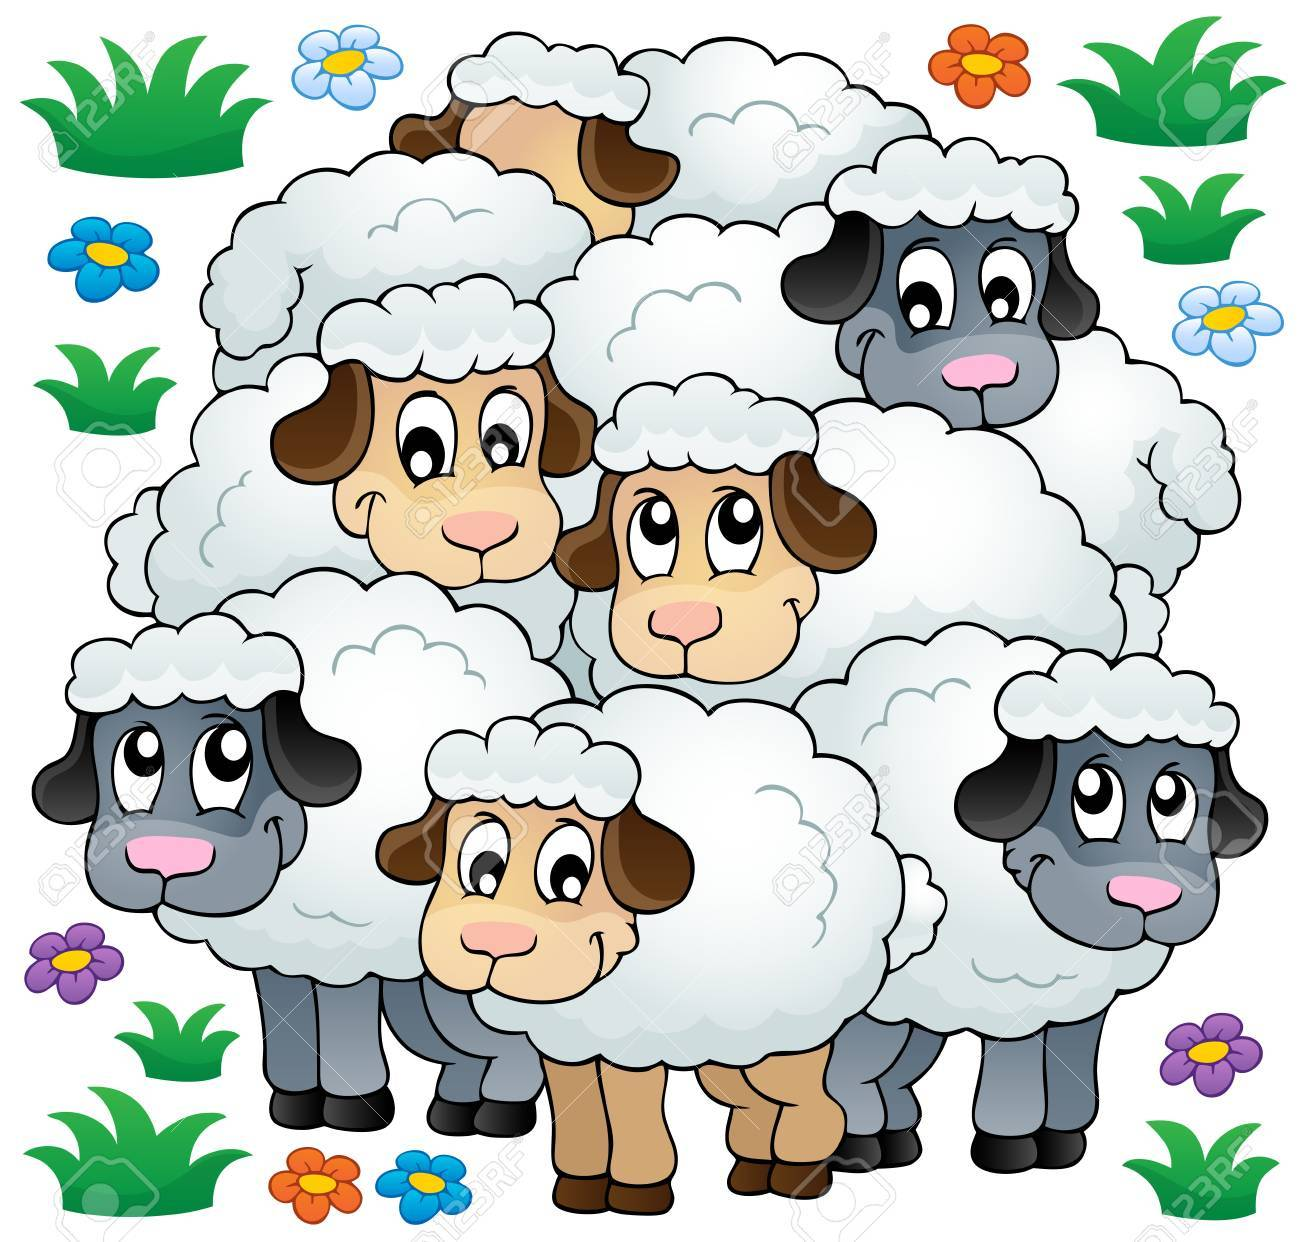 Sheep Flock Drawing Sheep Theme Image 3 Eps10